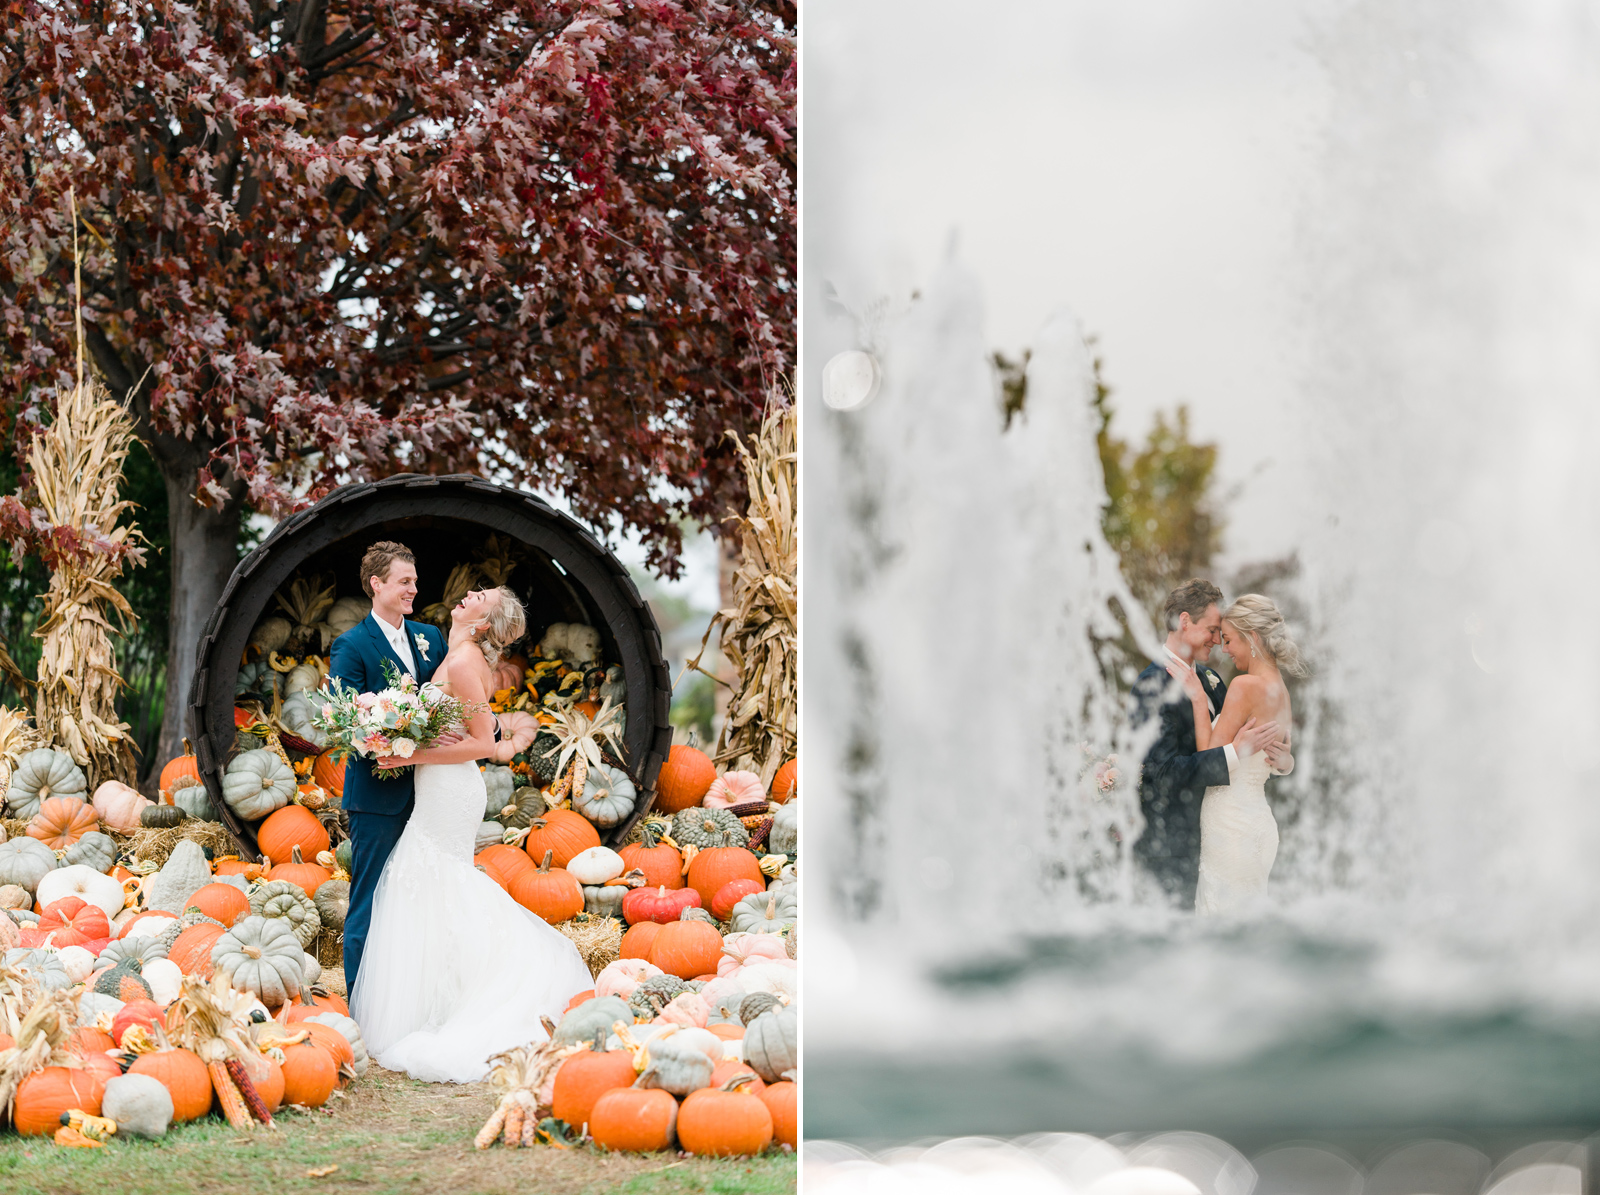 Kenosha Chicago Milwaukee Destination Wedding Photographer MJ St